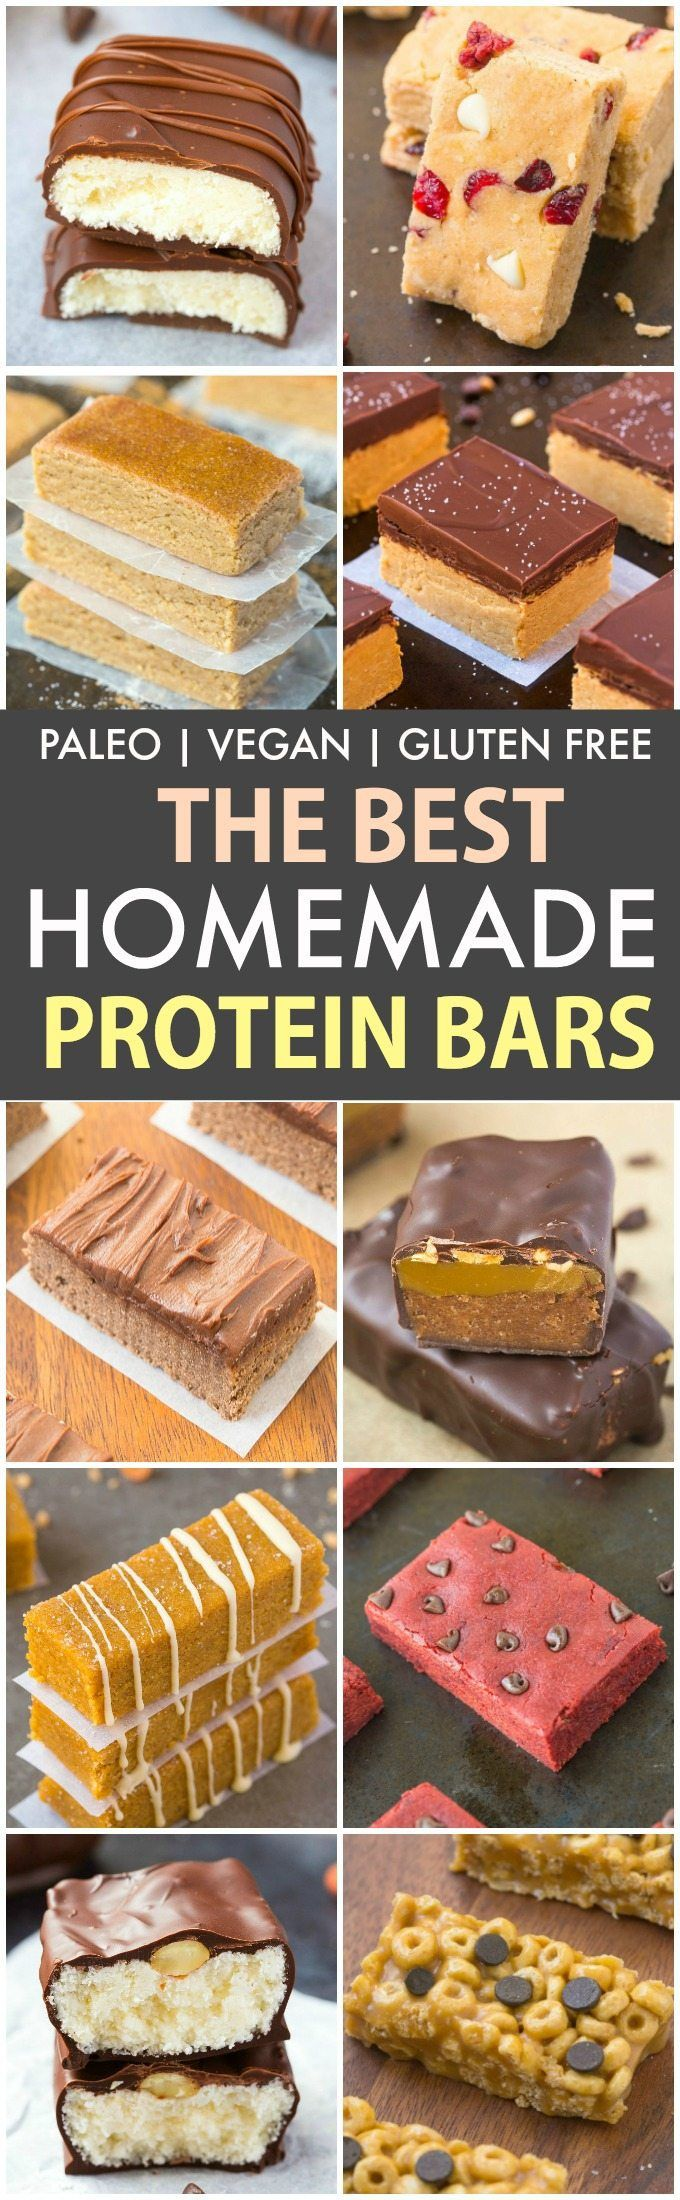 The Best Healthy Homemade Protein Bar Recipes (P, V, GF, DF)- Easy, quick and delicious homemade protein bar recipes which take minutes to make- A portable low carb and low sugar snack! {vegan, gluten free, paleo}- thebigmansworld.com #proteinbar #nobake #backtoschool